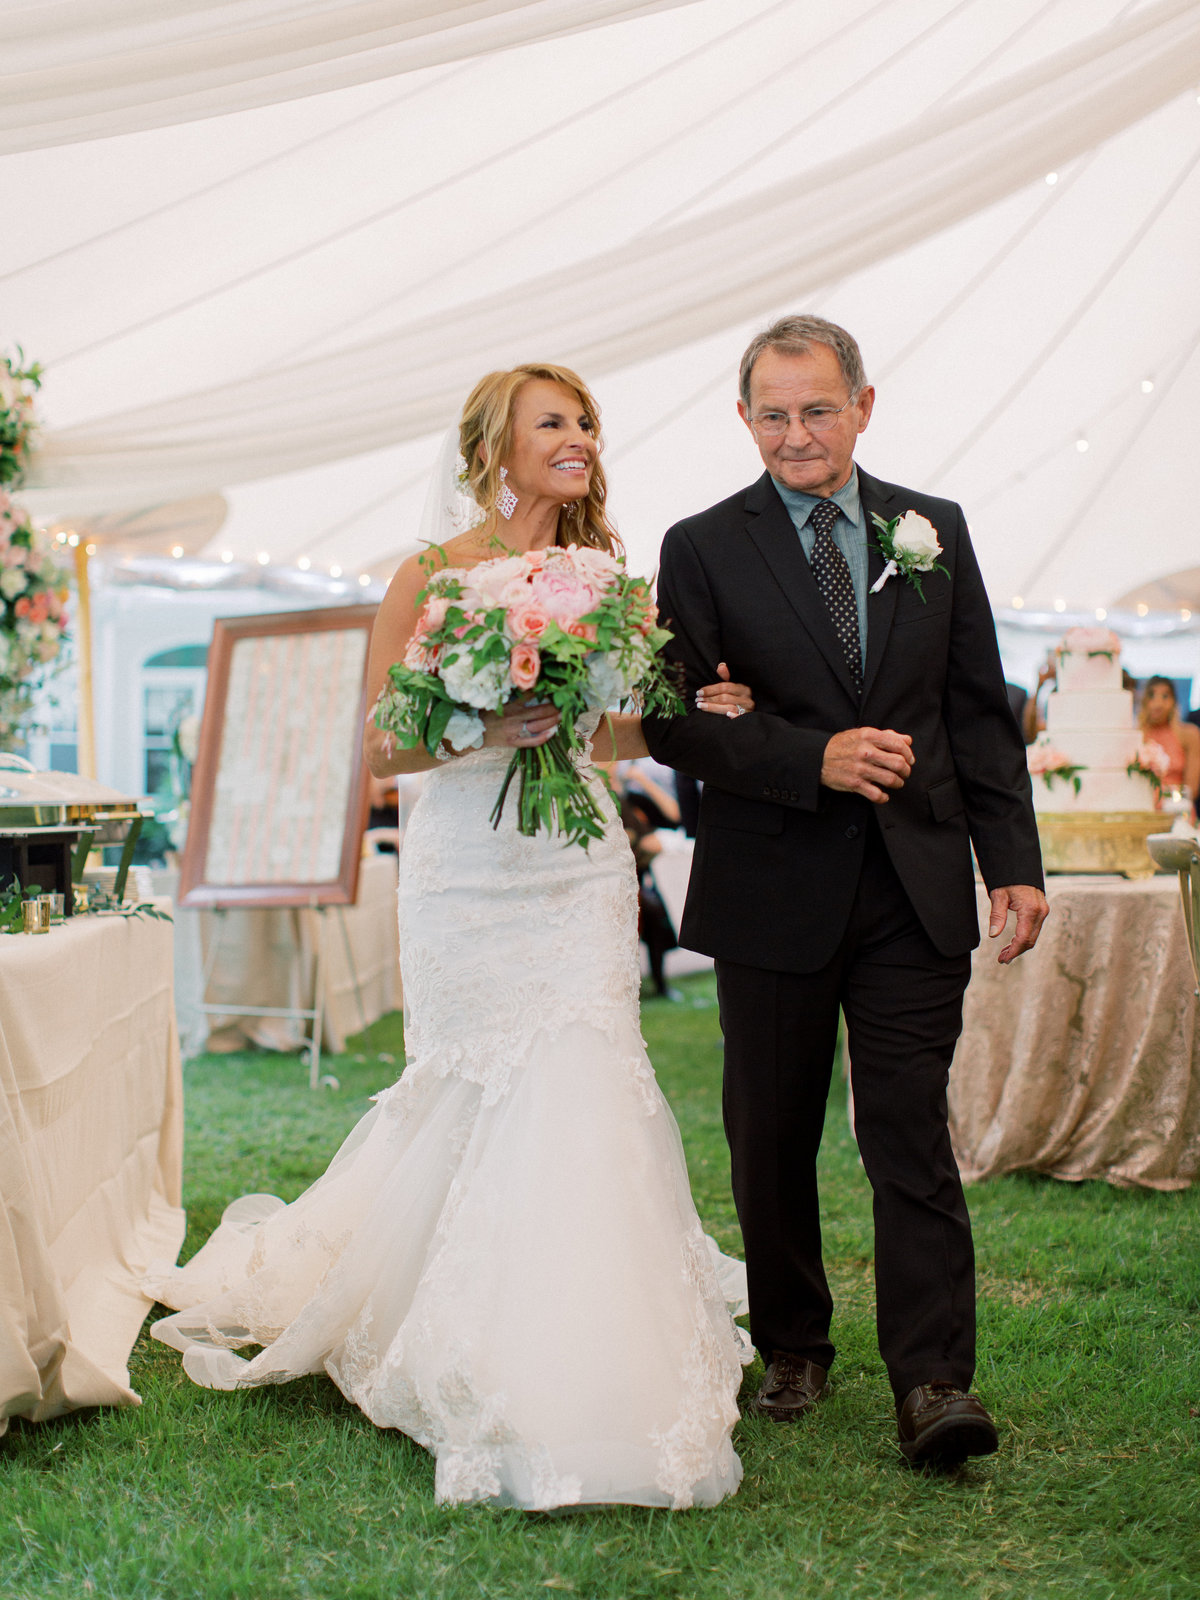 2019-06-08Carrie&MikeWedding-180